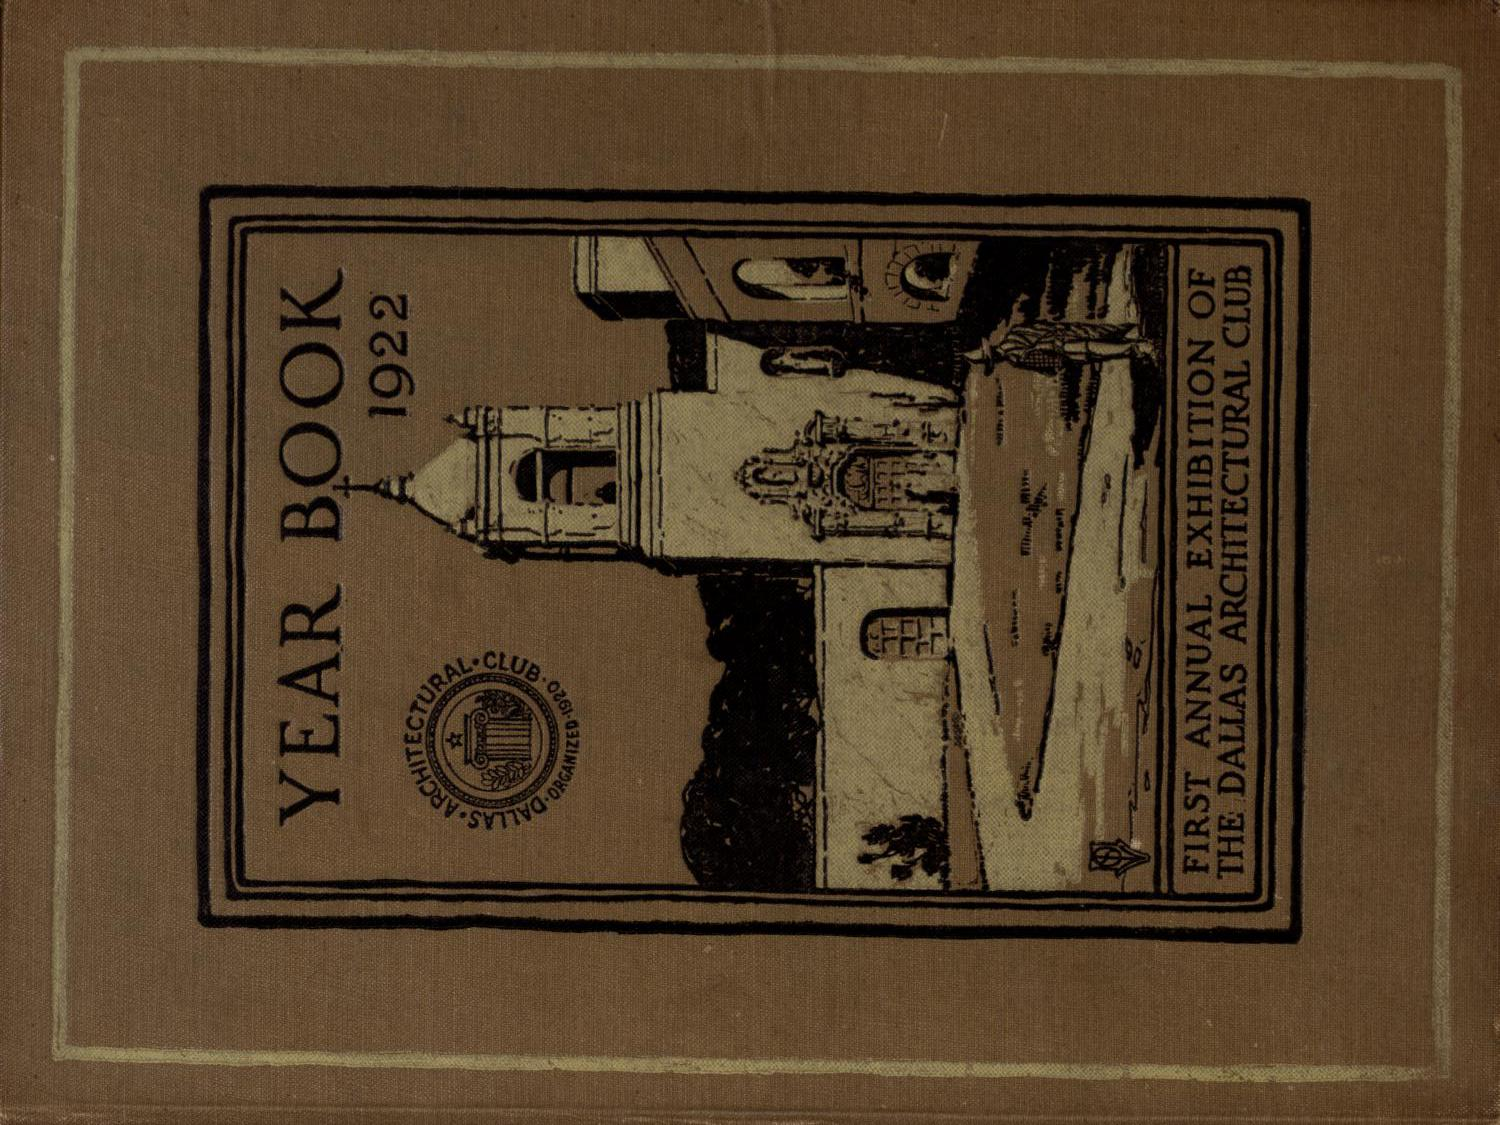 Year book of the Dallas Architectural Club and catalogue of its first annual exhibition : held at the Jefferson Hotel, Dallas, February eleventh to eighteenth, 1922                                                                                                      Front Cover